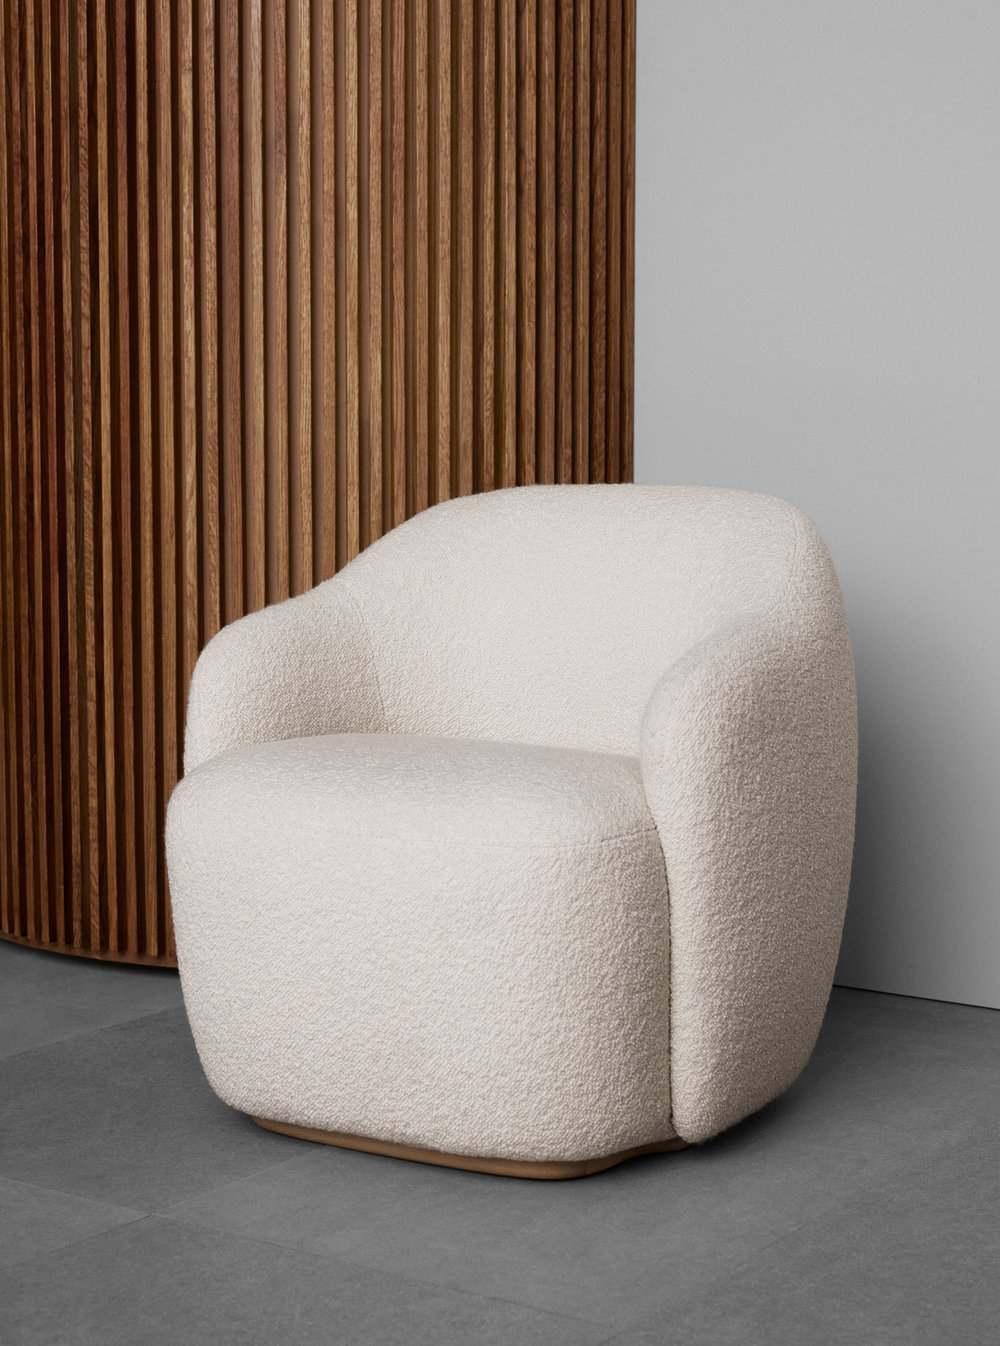 Fogia's new 'NIche' armchair by Andreas Engesvik in white boucle fabric was a big hit as it offers many of the qualities of the popular Danish classic the  'TIred Man chair' by Flemming Lassen  but in a rounded, compact form.